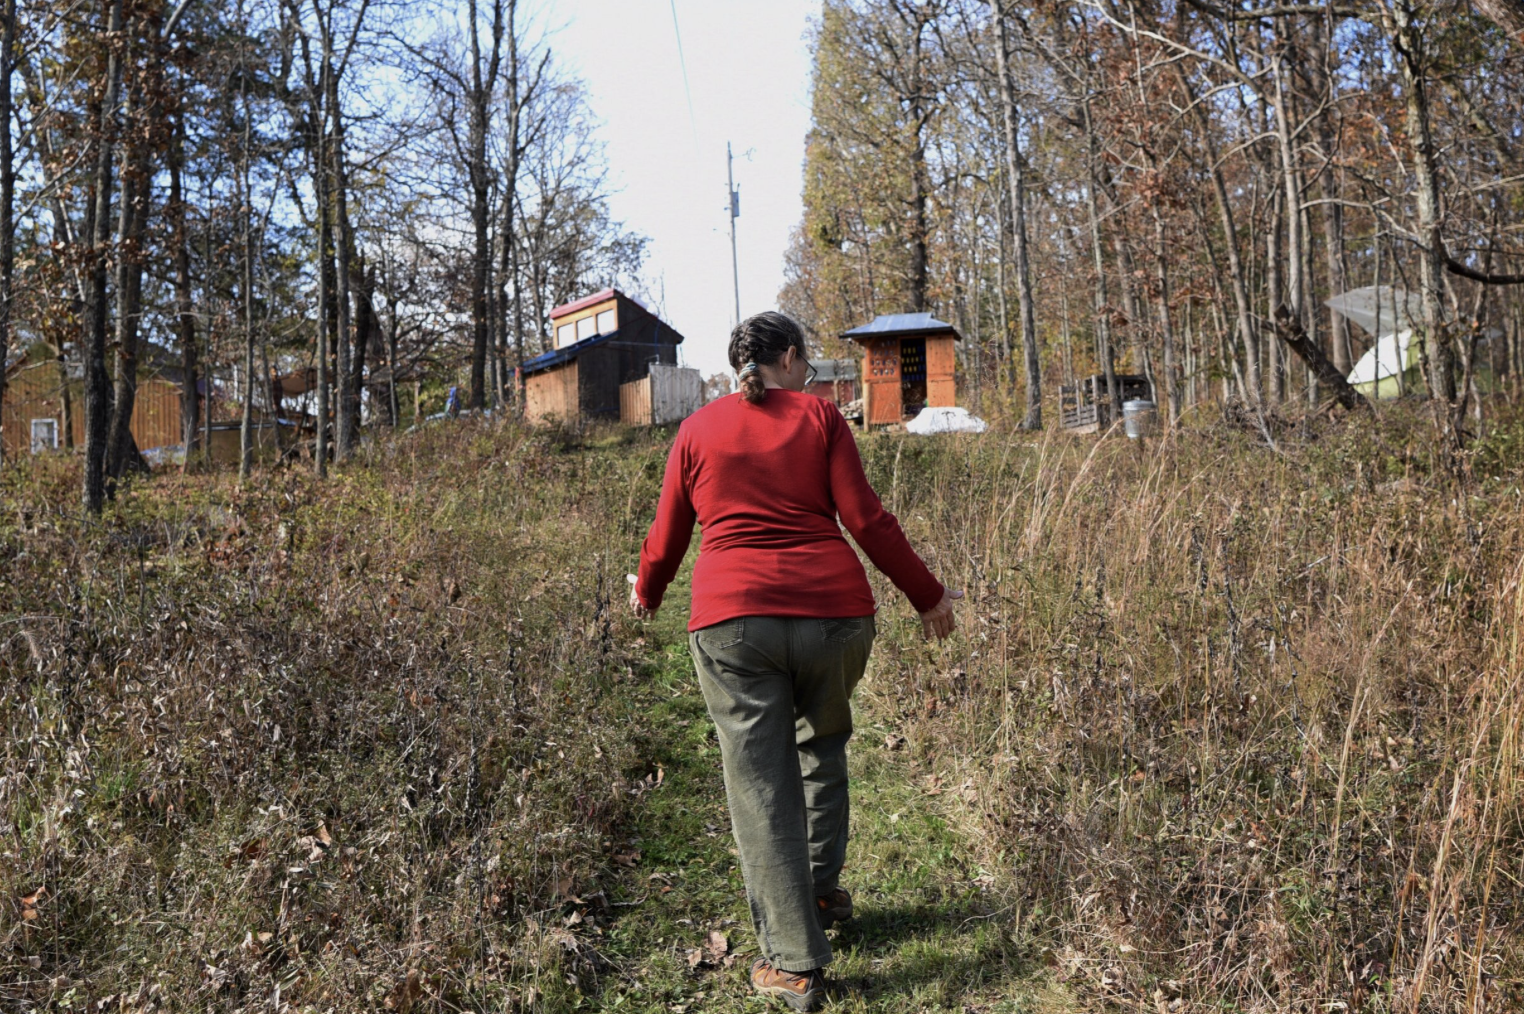 """Margaret Waddell walks toward the camping ground on her land at Crystal Lake on Nov. 3, 2019. The one-room cabin with a screened-in porch originally built on the land burned down in a fire 13 years ago. However, Waddell has spent as many weekends as possible camping and working on the land in an effort to rebuild her favorite place by hand. """"I have always wanted to rebuild the cabin in the spirit of my great-grandparents,"""" Waddell said. """"It is the greatest goal of my life to create a place where family and friends can gather to spend time together in nature... which inspires music and storytelling and a sense of community."""""""